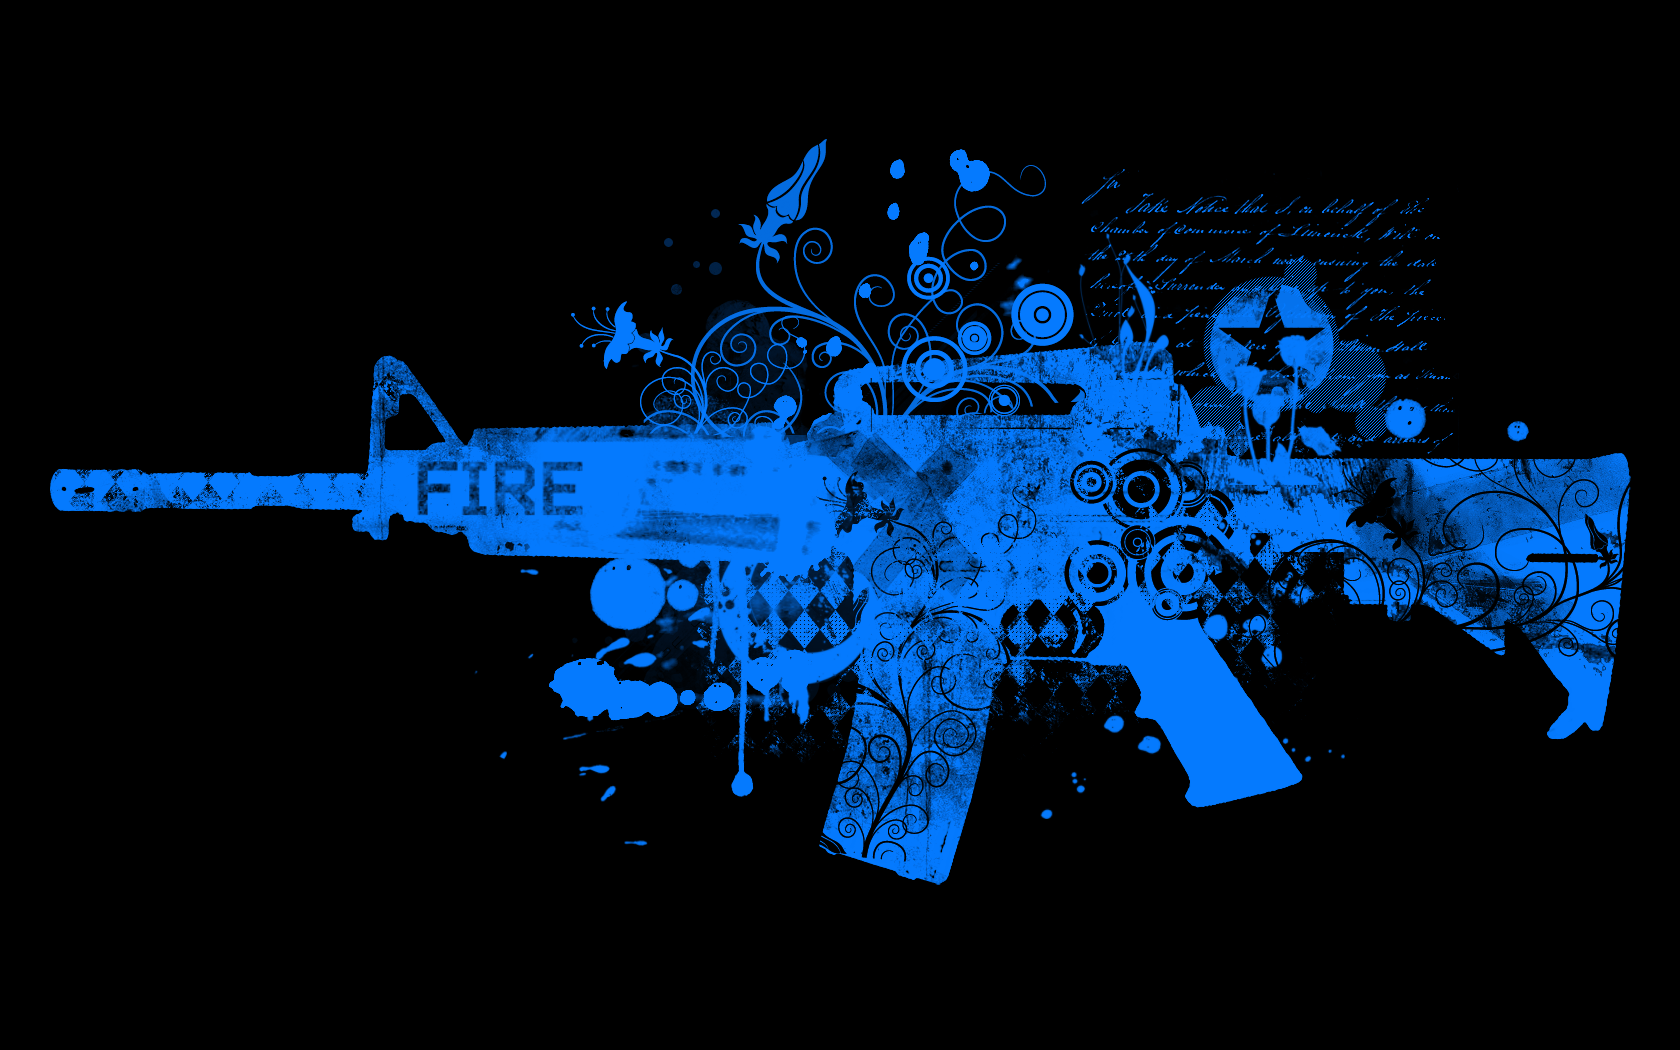 ar 15 firearm colt m4 abstract desktop 1680x1050 hd wallpaper 164101 1680x1050